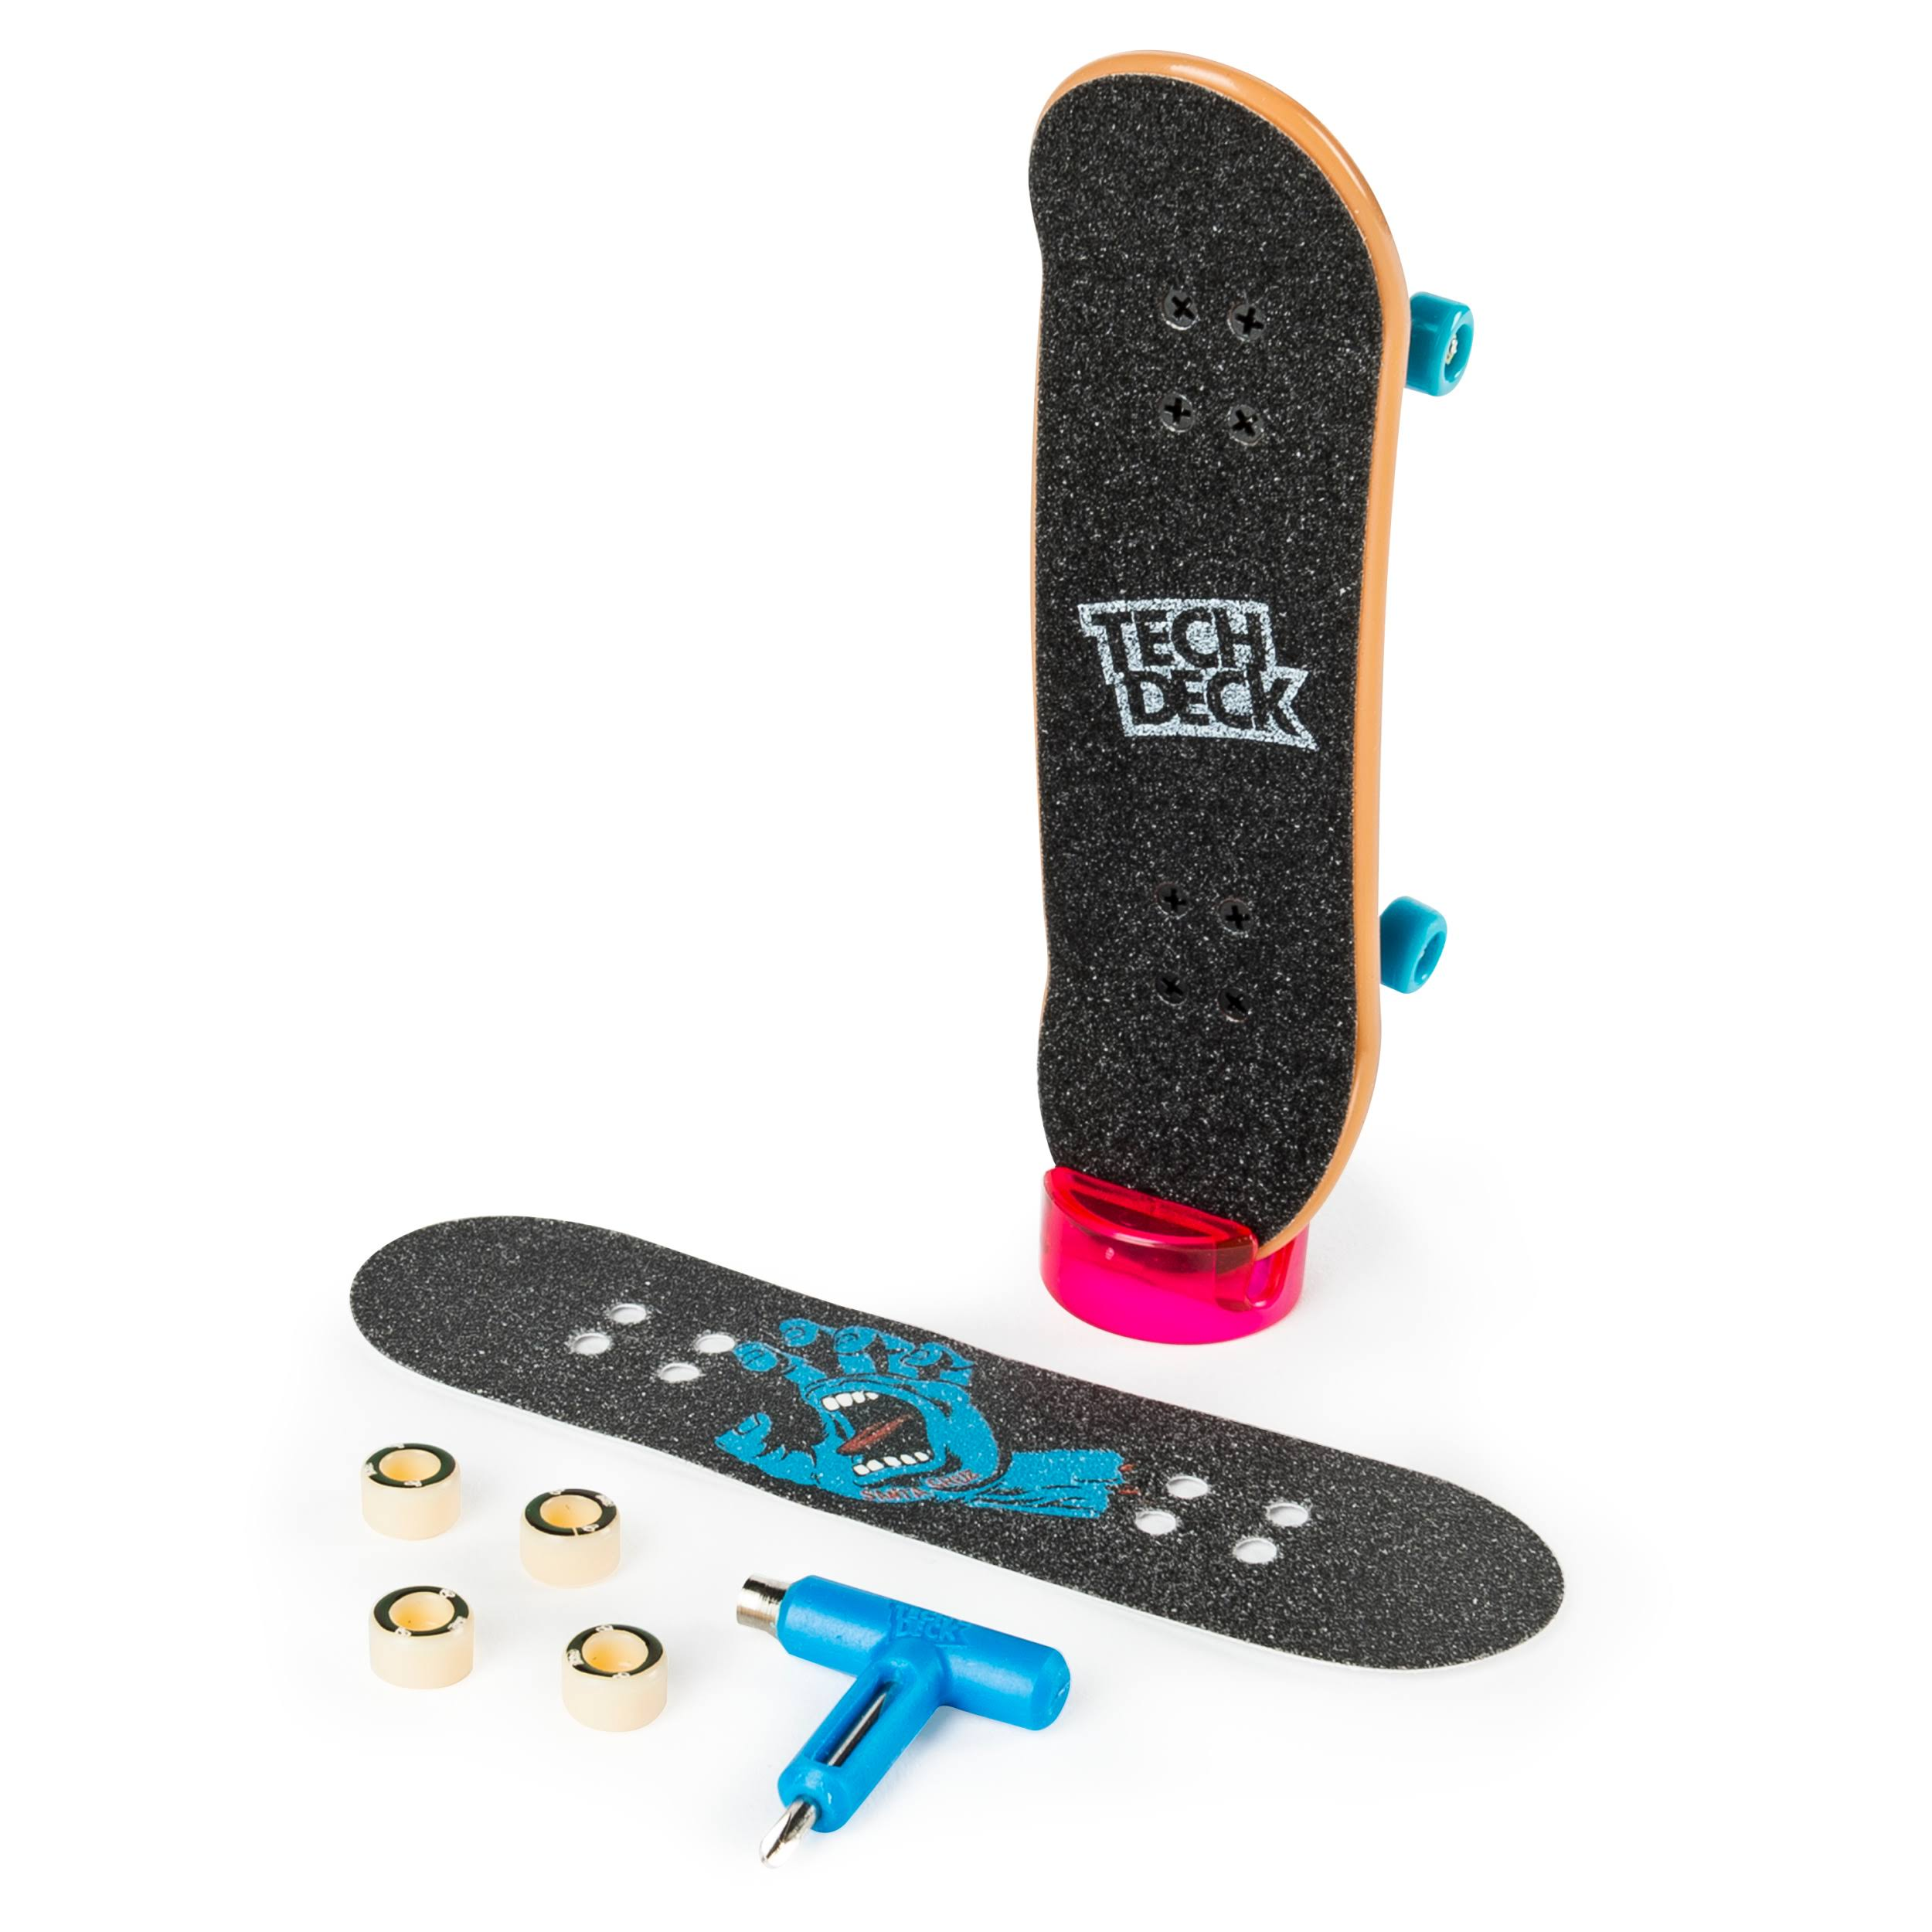 Tech Deck Toy Machine, Series 4, Tech Deck